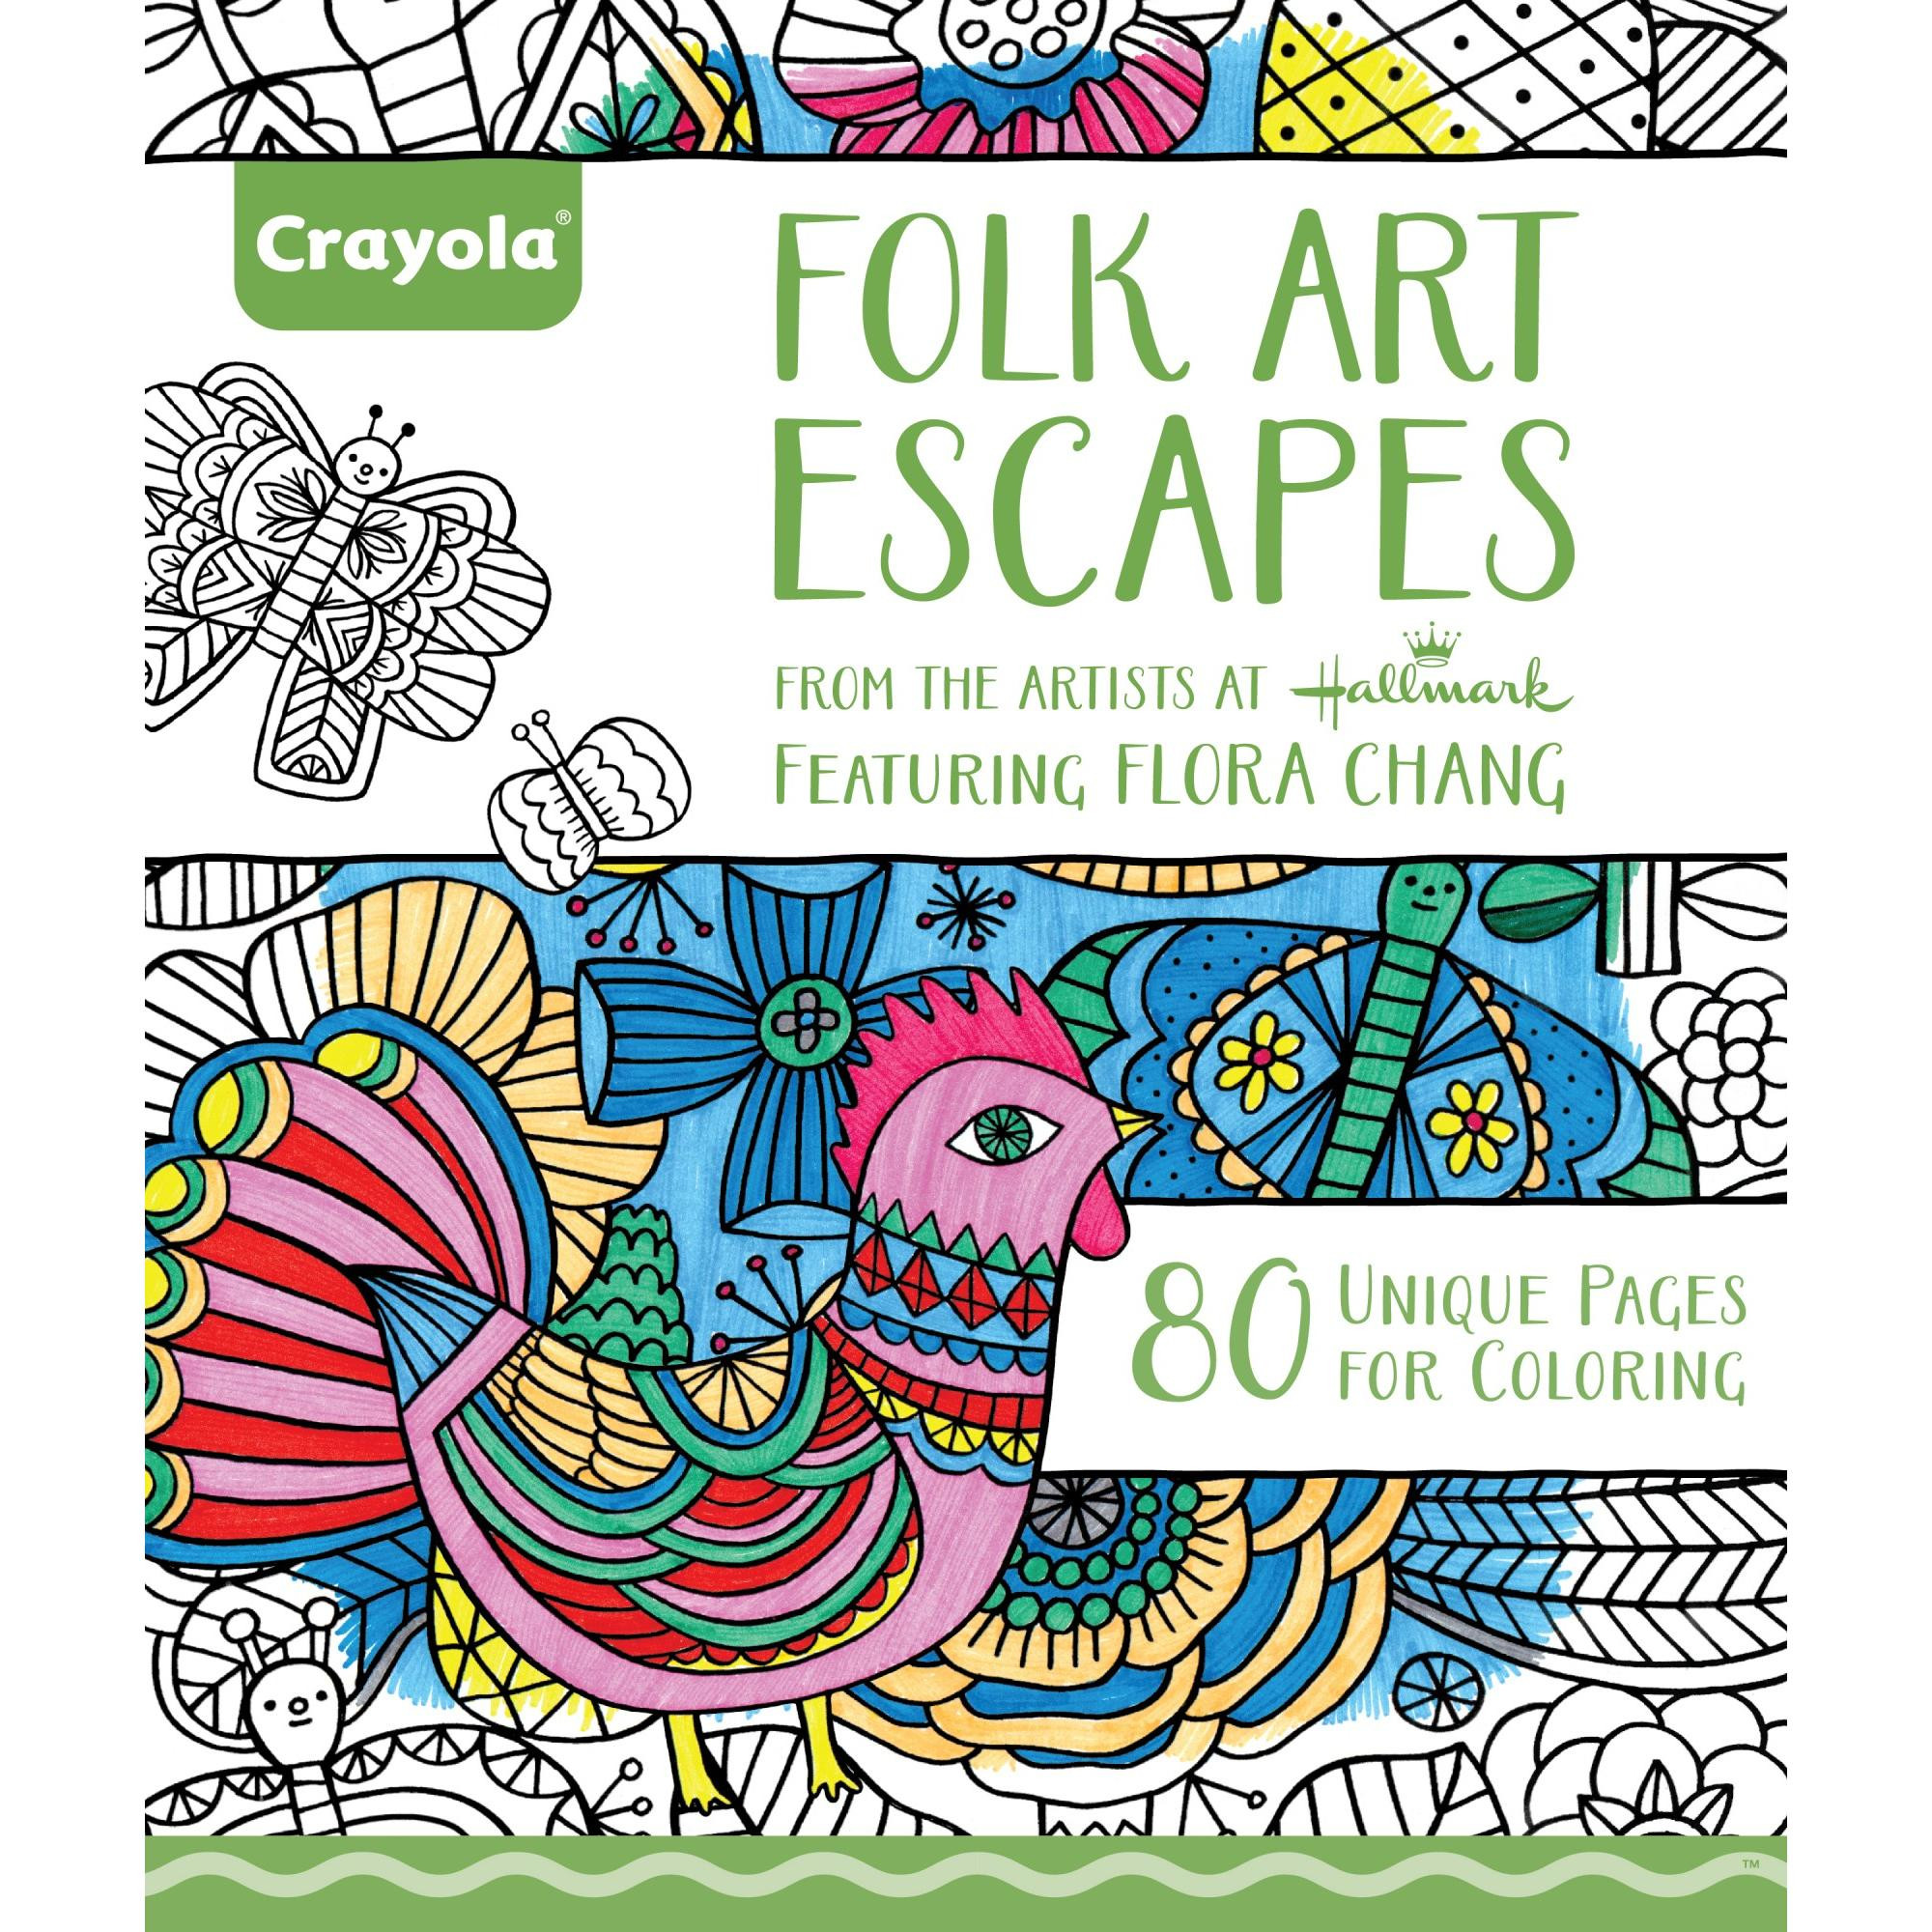 Best ideas about Crayola Adult Coloring Books . Save or Pin Crayola Adult Coloring Book Bundle Folk Art Escapes and Now.